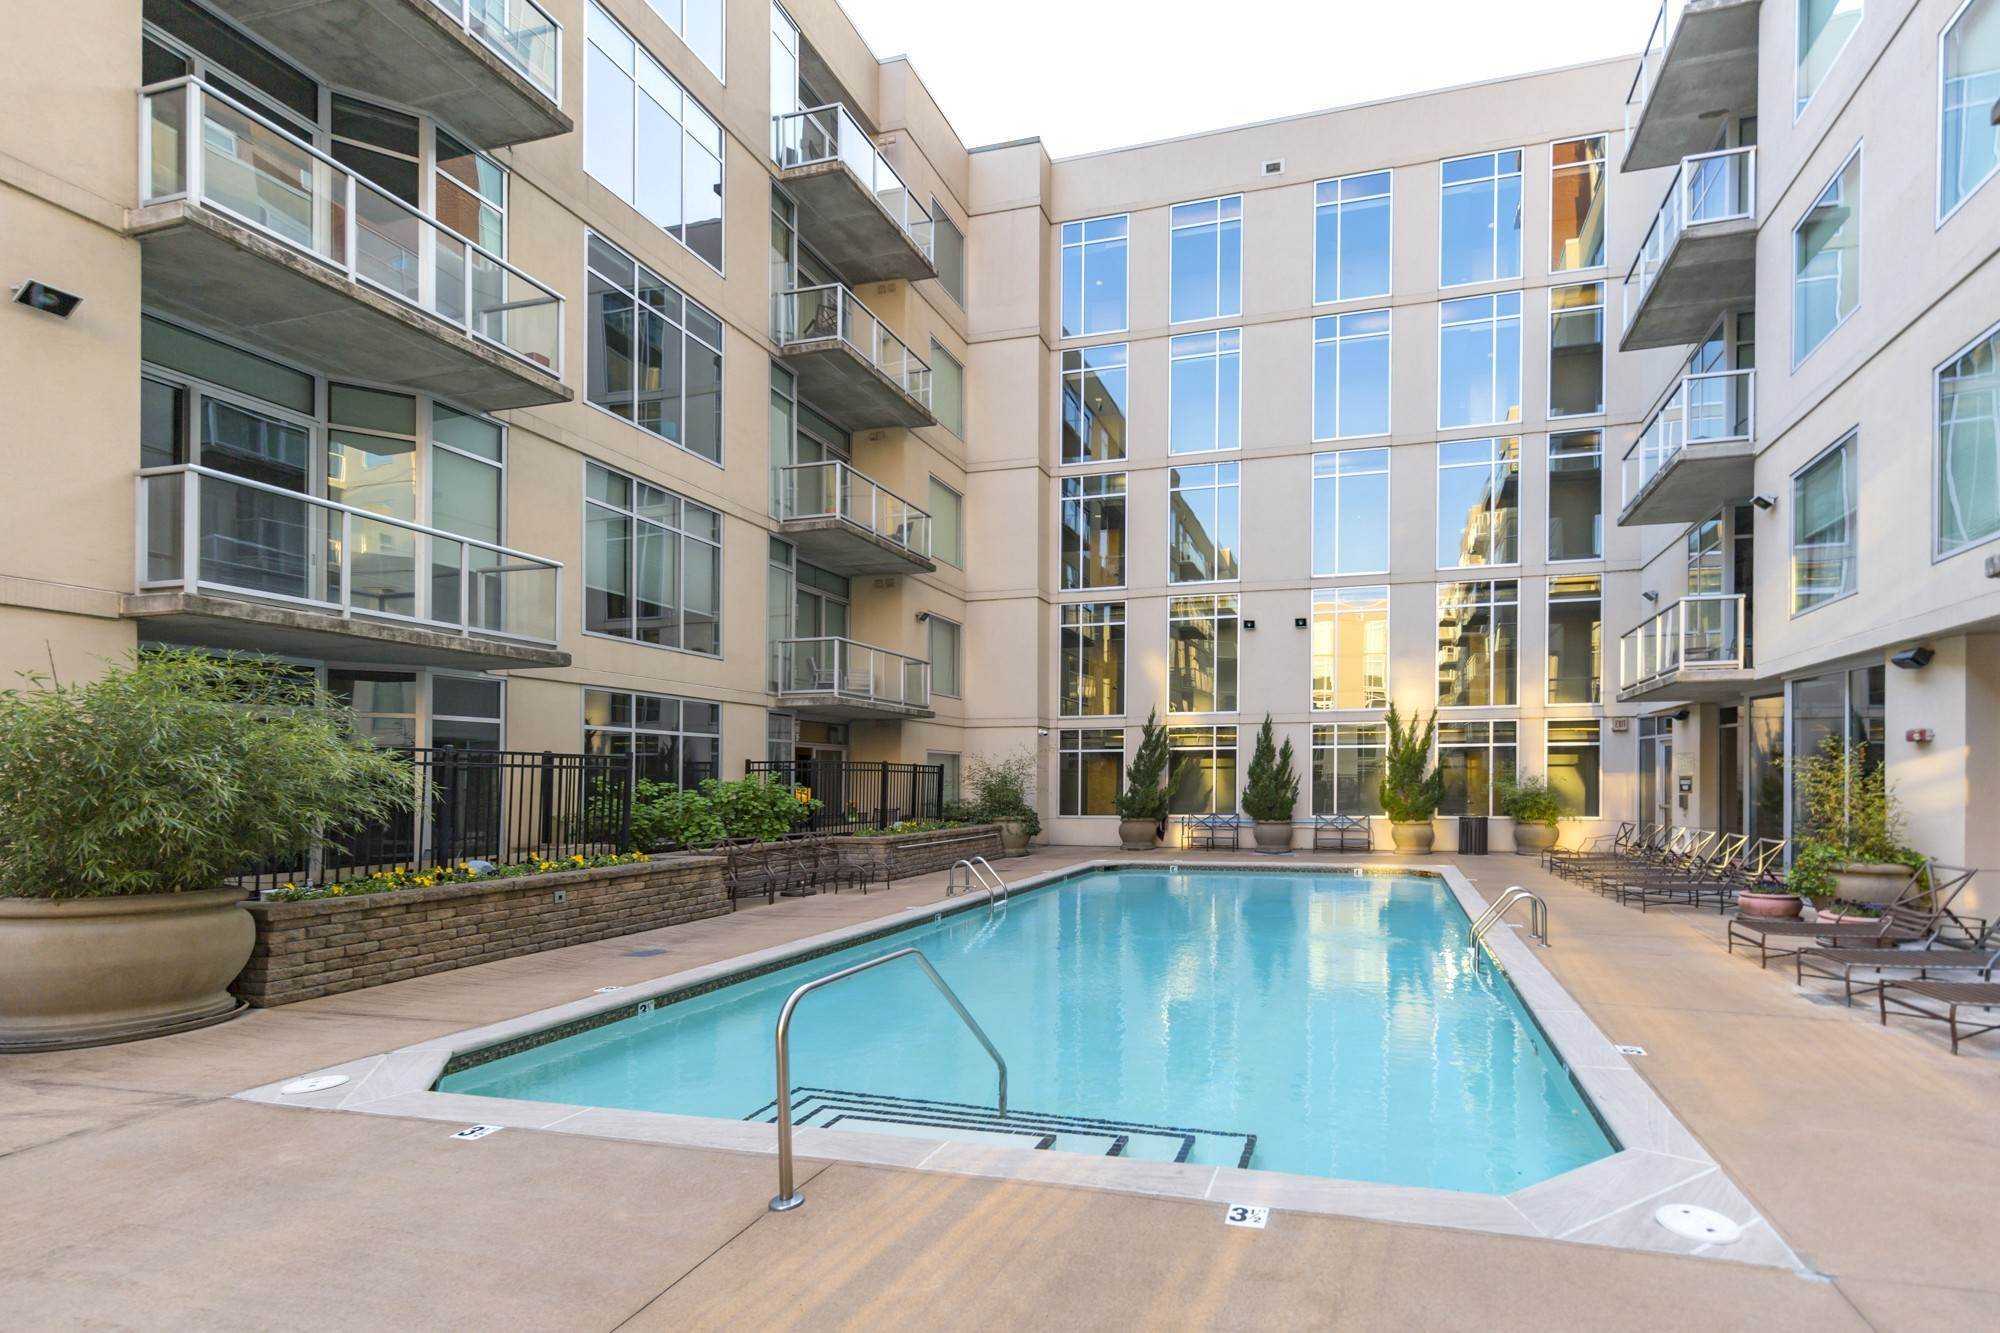 8. High Rise for Sale at 600 12th Ave, S Nashville, Tennessee 37203 United States